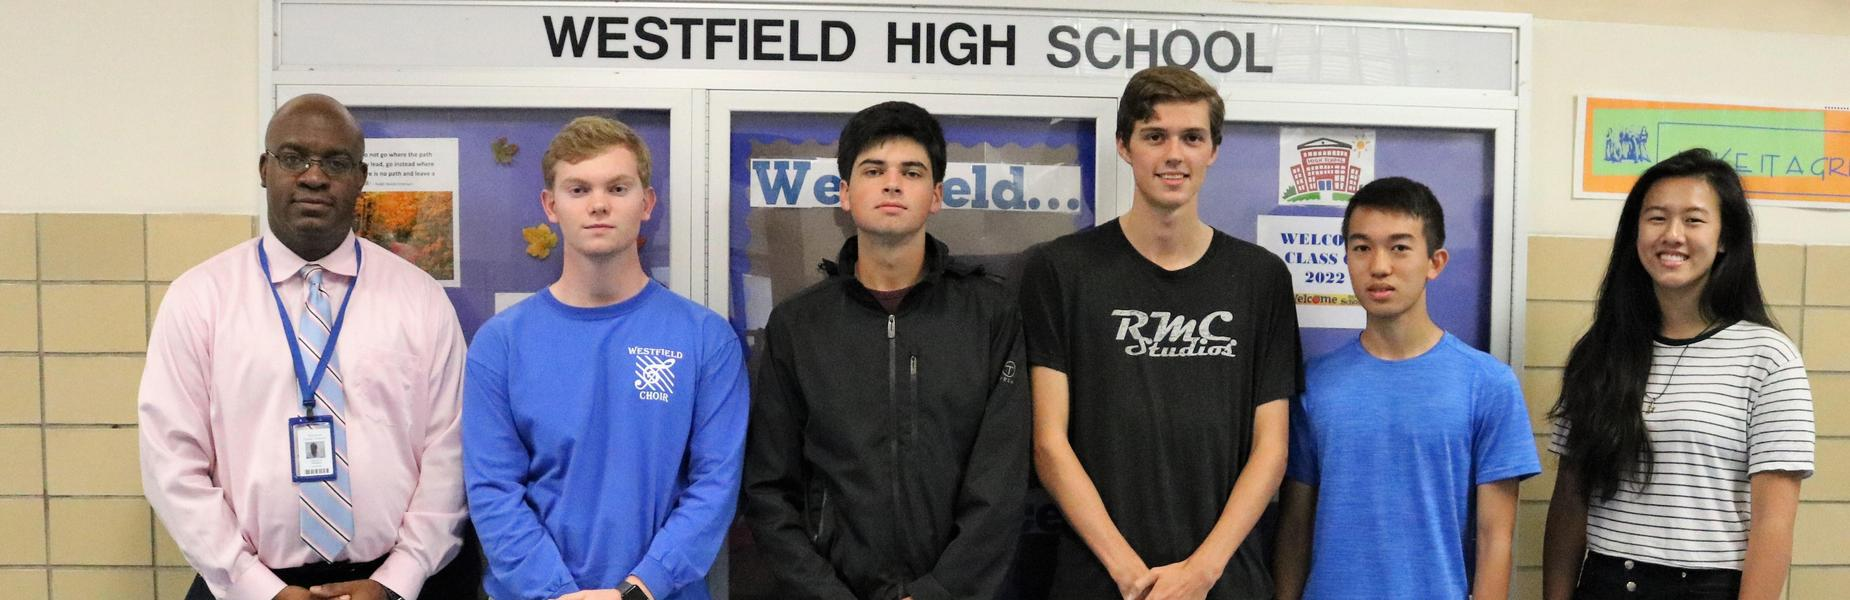 Westfield High School juniors Valerie Chang and Kurt Hu and seniors Alexander McGrail, Timothy Miller, Jacob Singman, and Andrew Zanfagna received the highest score possible on portions of the September 2018 ACT standardized tests, according to recent reports received by the school.  Pictured here with principal Dr. Derrick Nelson.